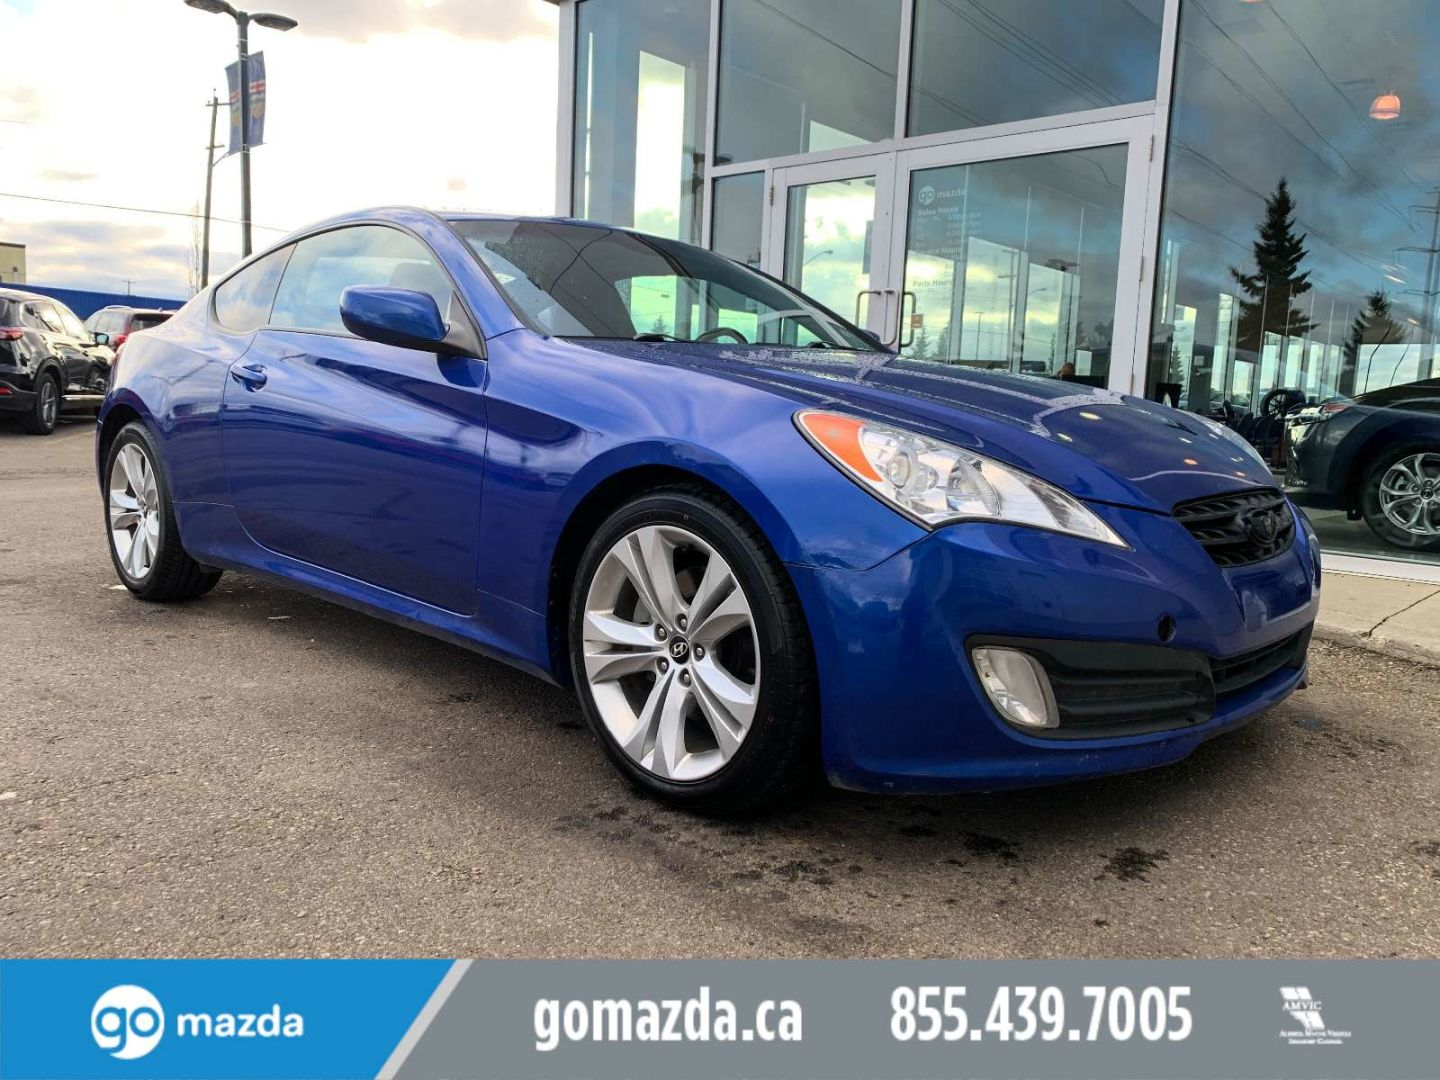 2010 Hyundai Genesis Coupe Premium for sale in Edmonton, Alberta